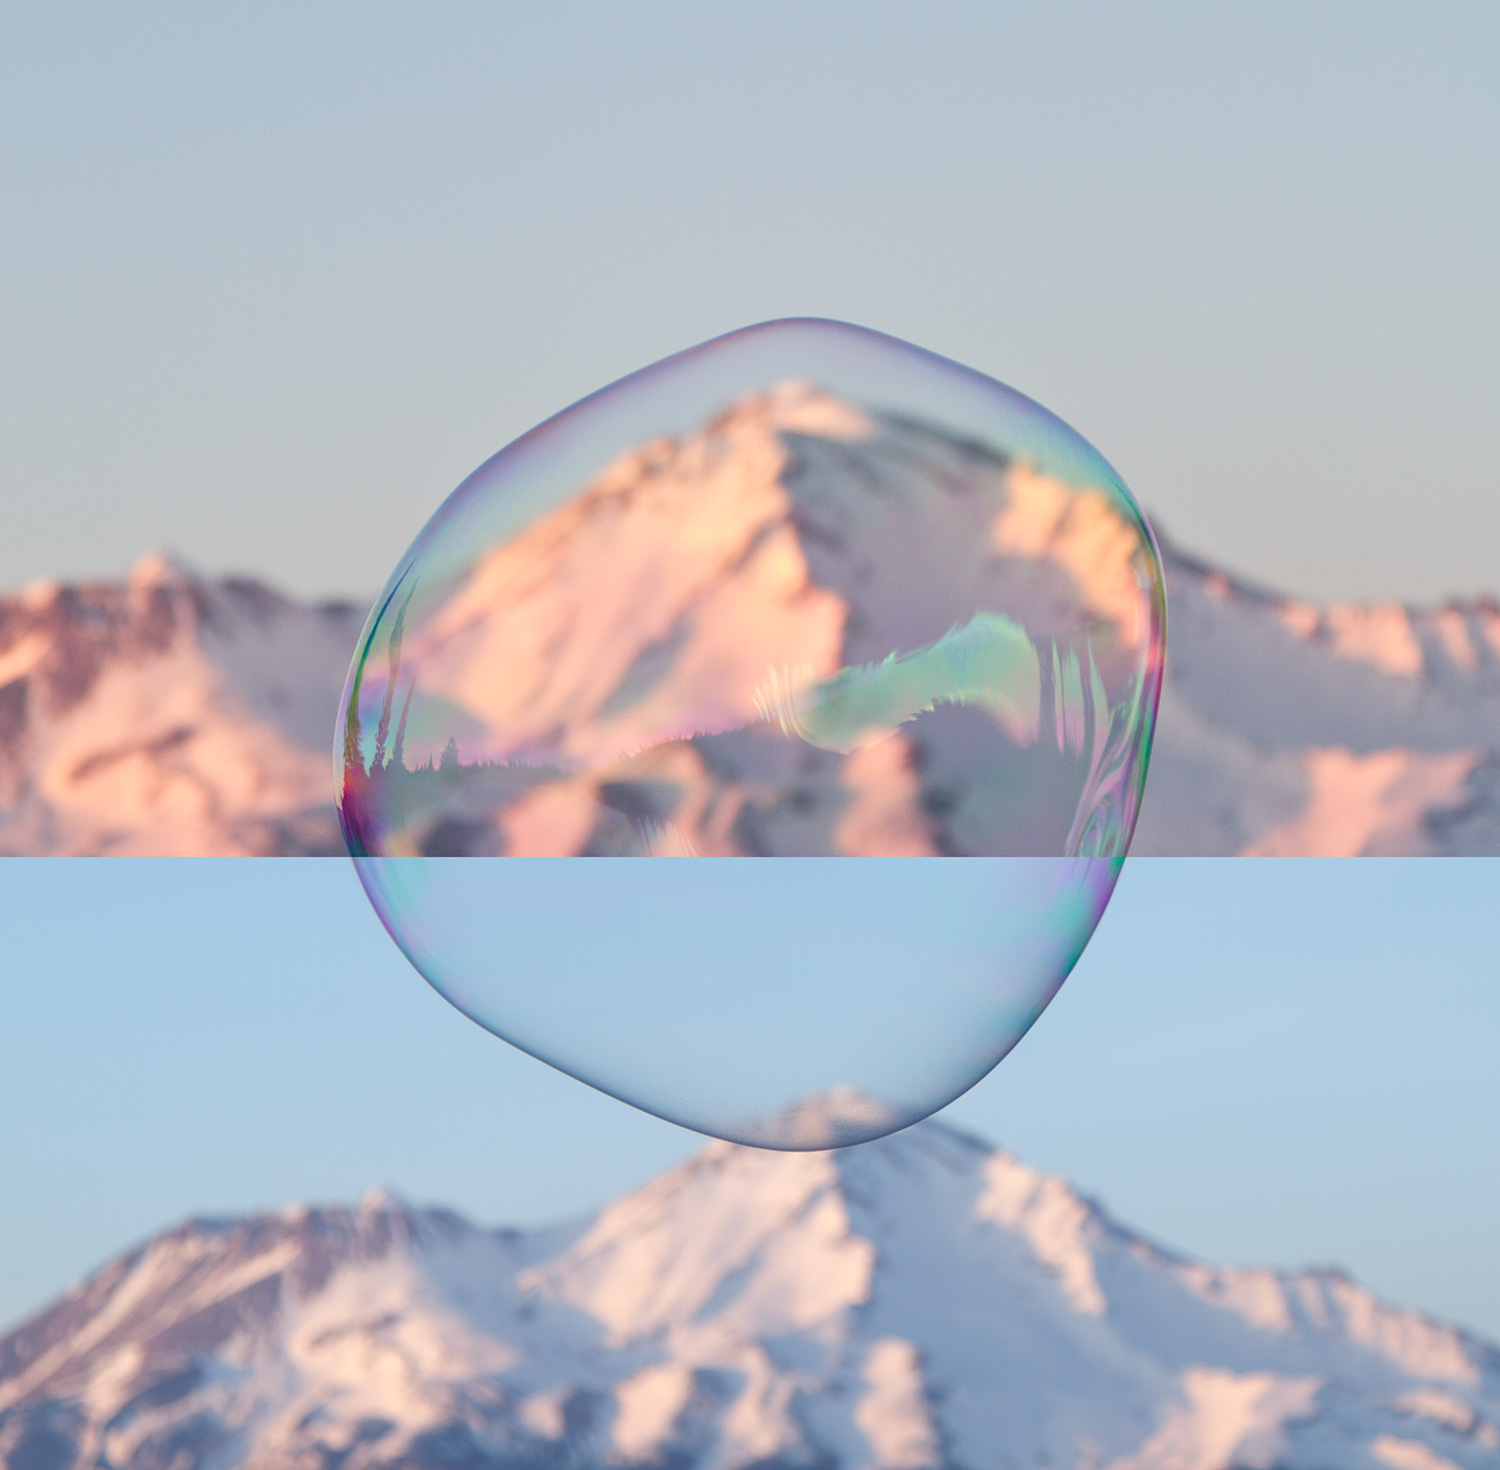 Shasta_Bubble_web.jpg